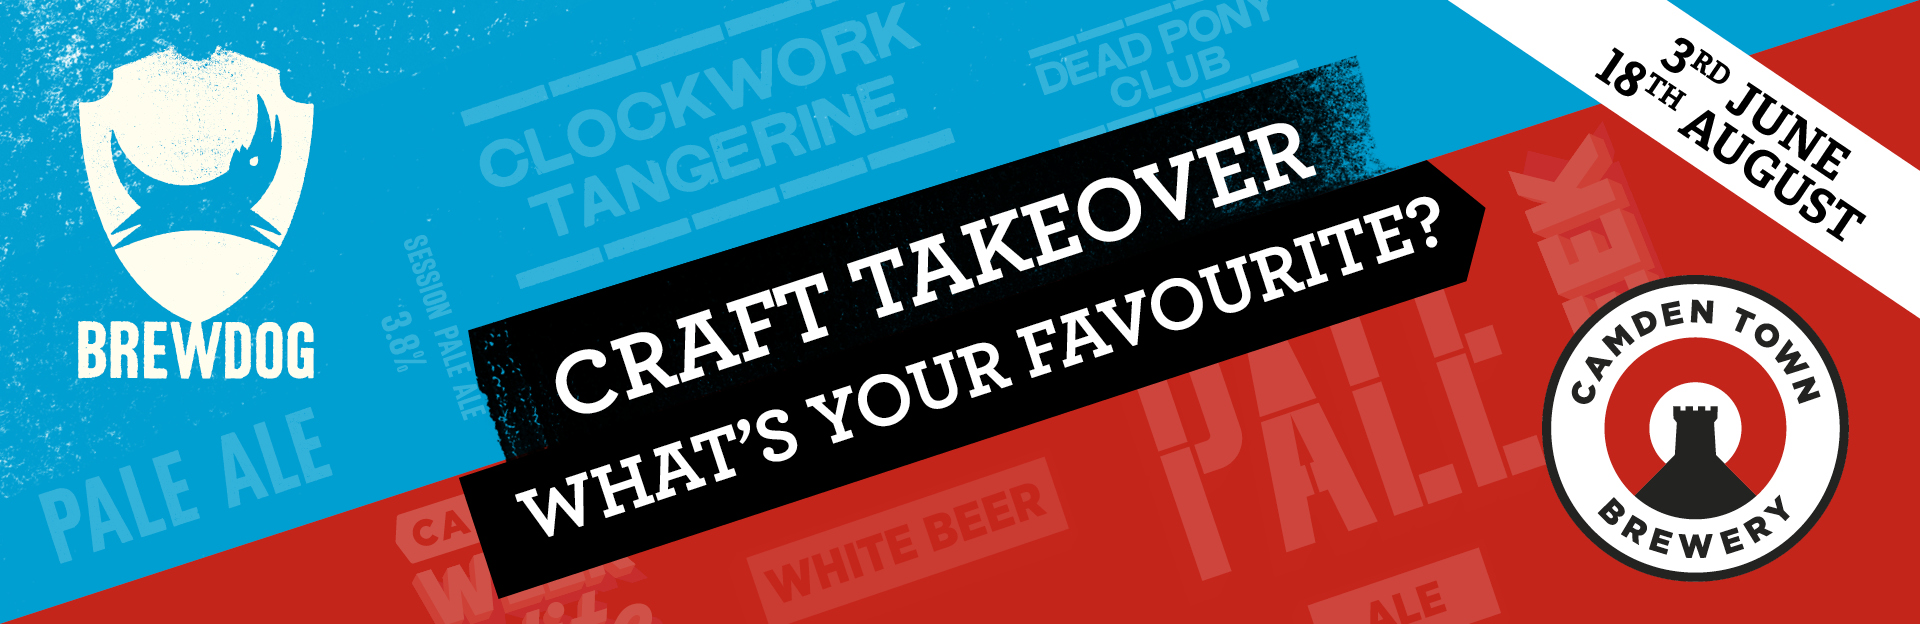 Craft Takeover at The Font